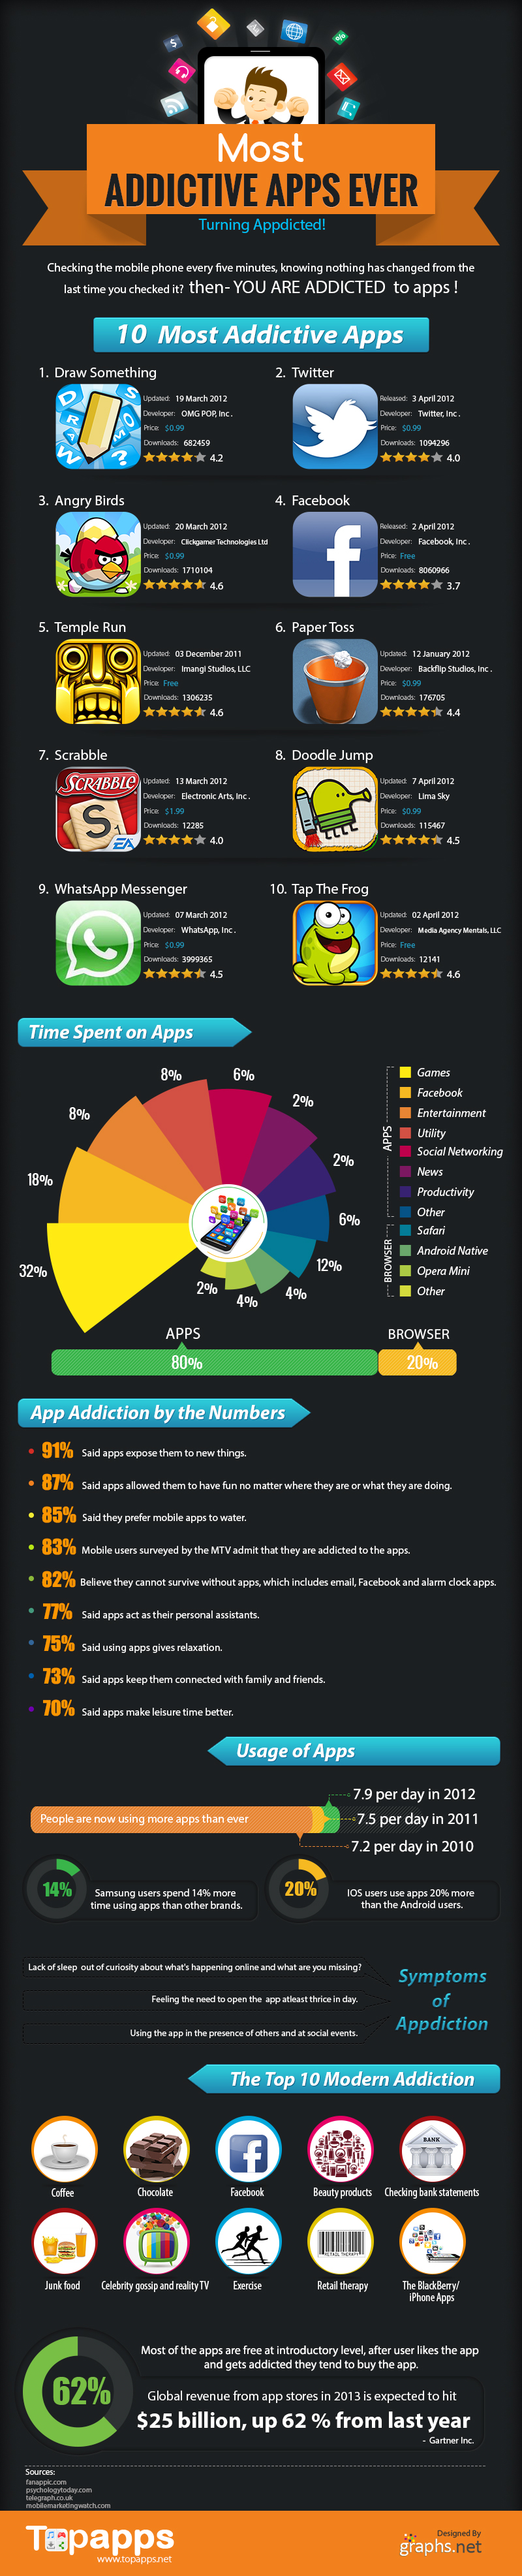 appy addicted apps